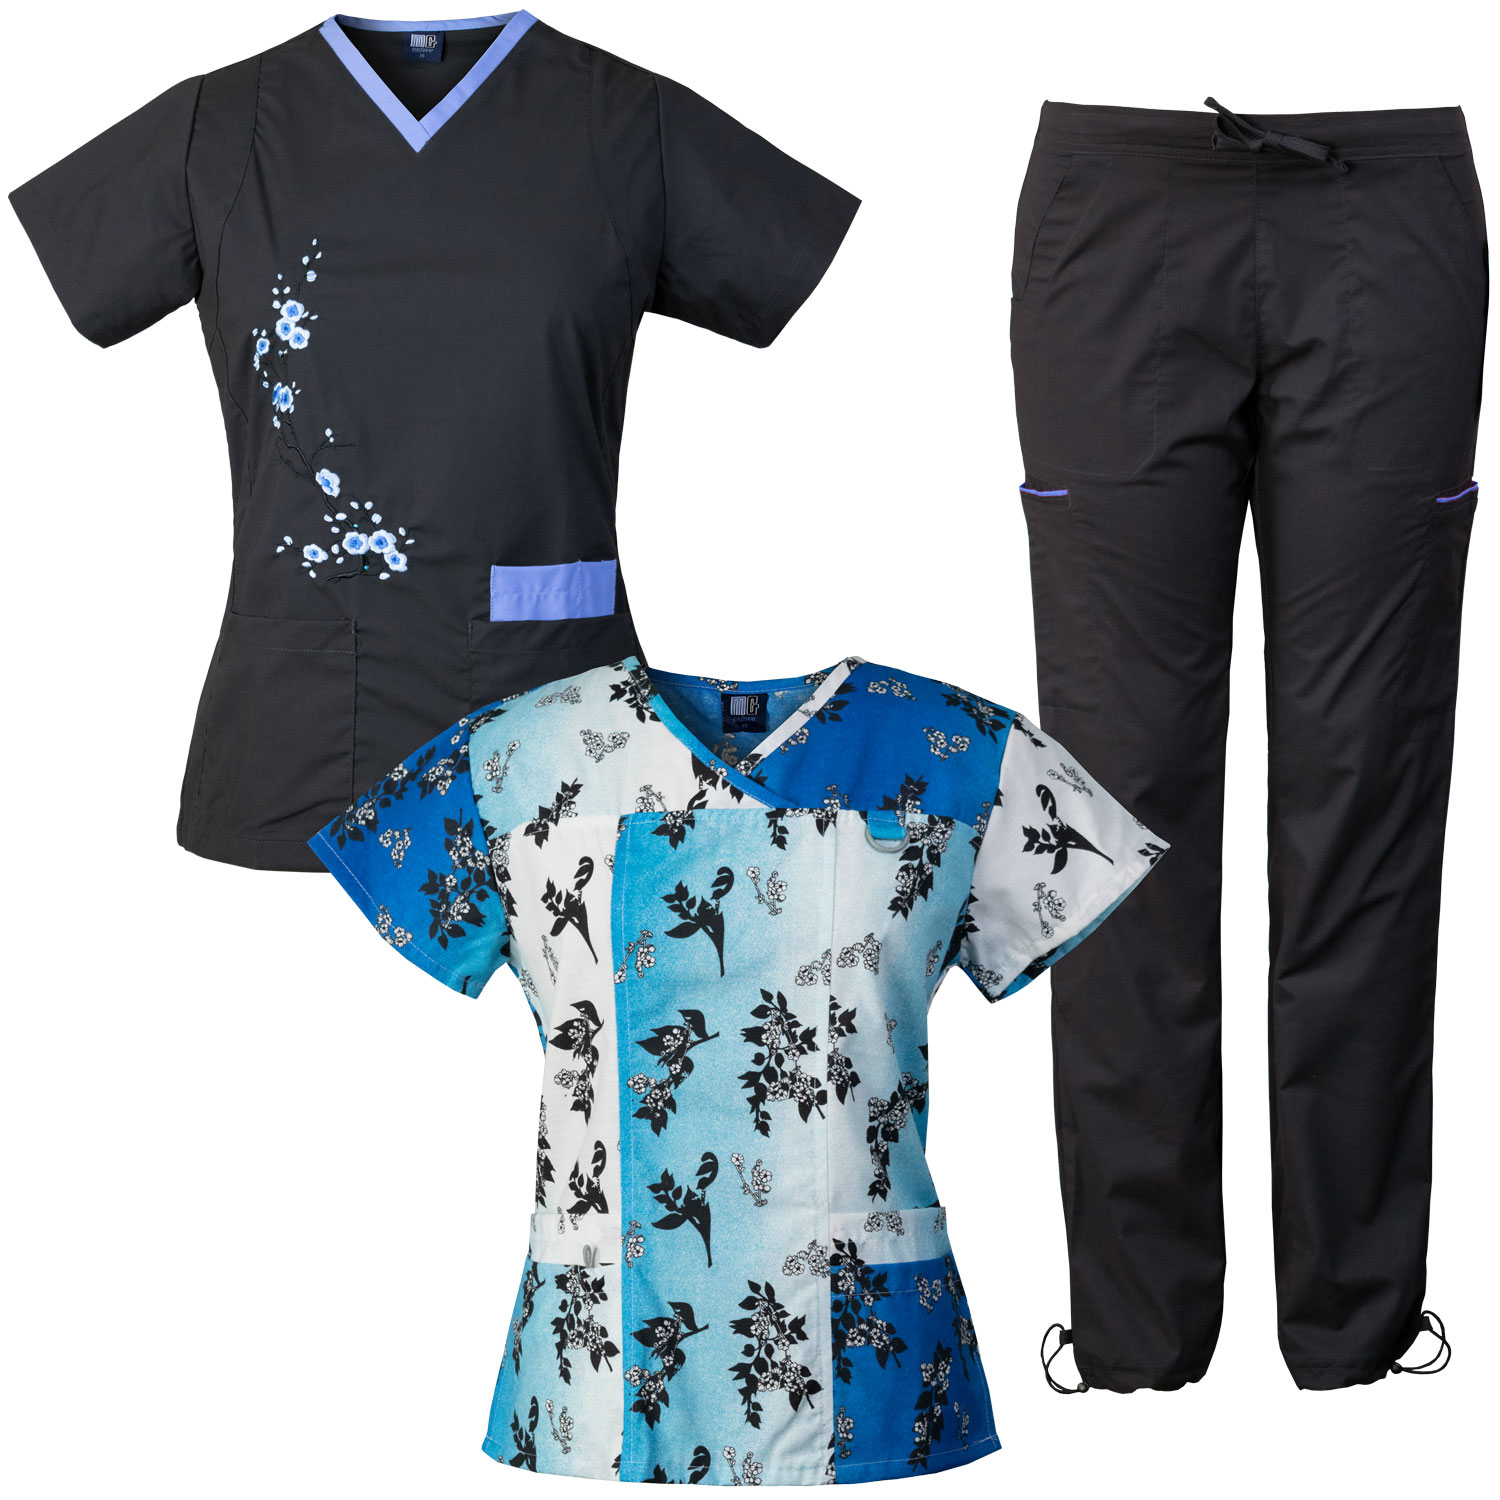 Medgear 3-Piece Stretch Scrubs Set with Embroidery and Printed Top Combo CHBB